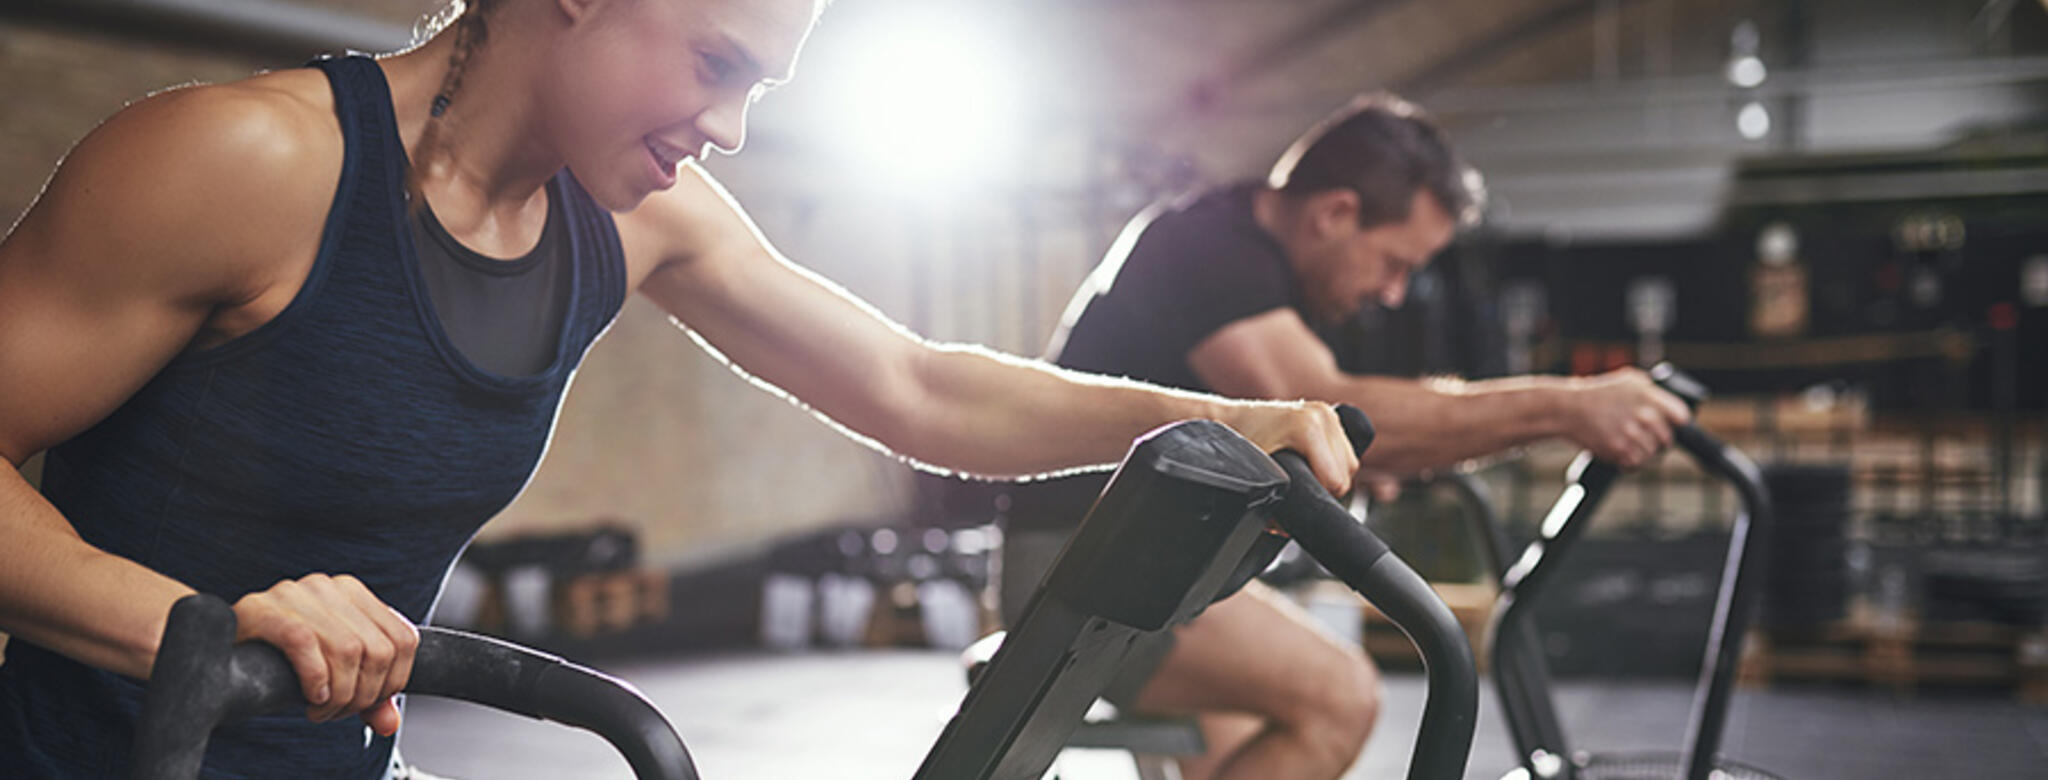 Woman working hard on stationary bike, man biking in background after purchasing introductory offers